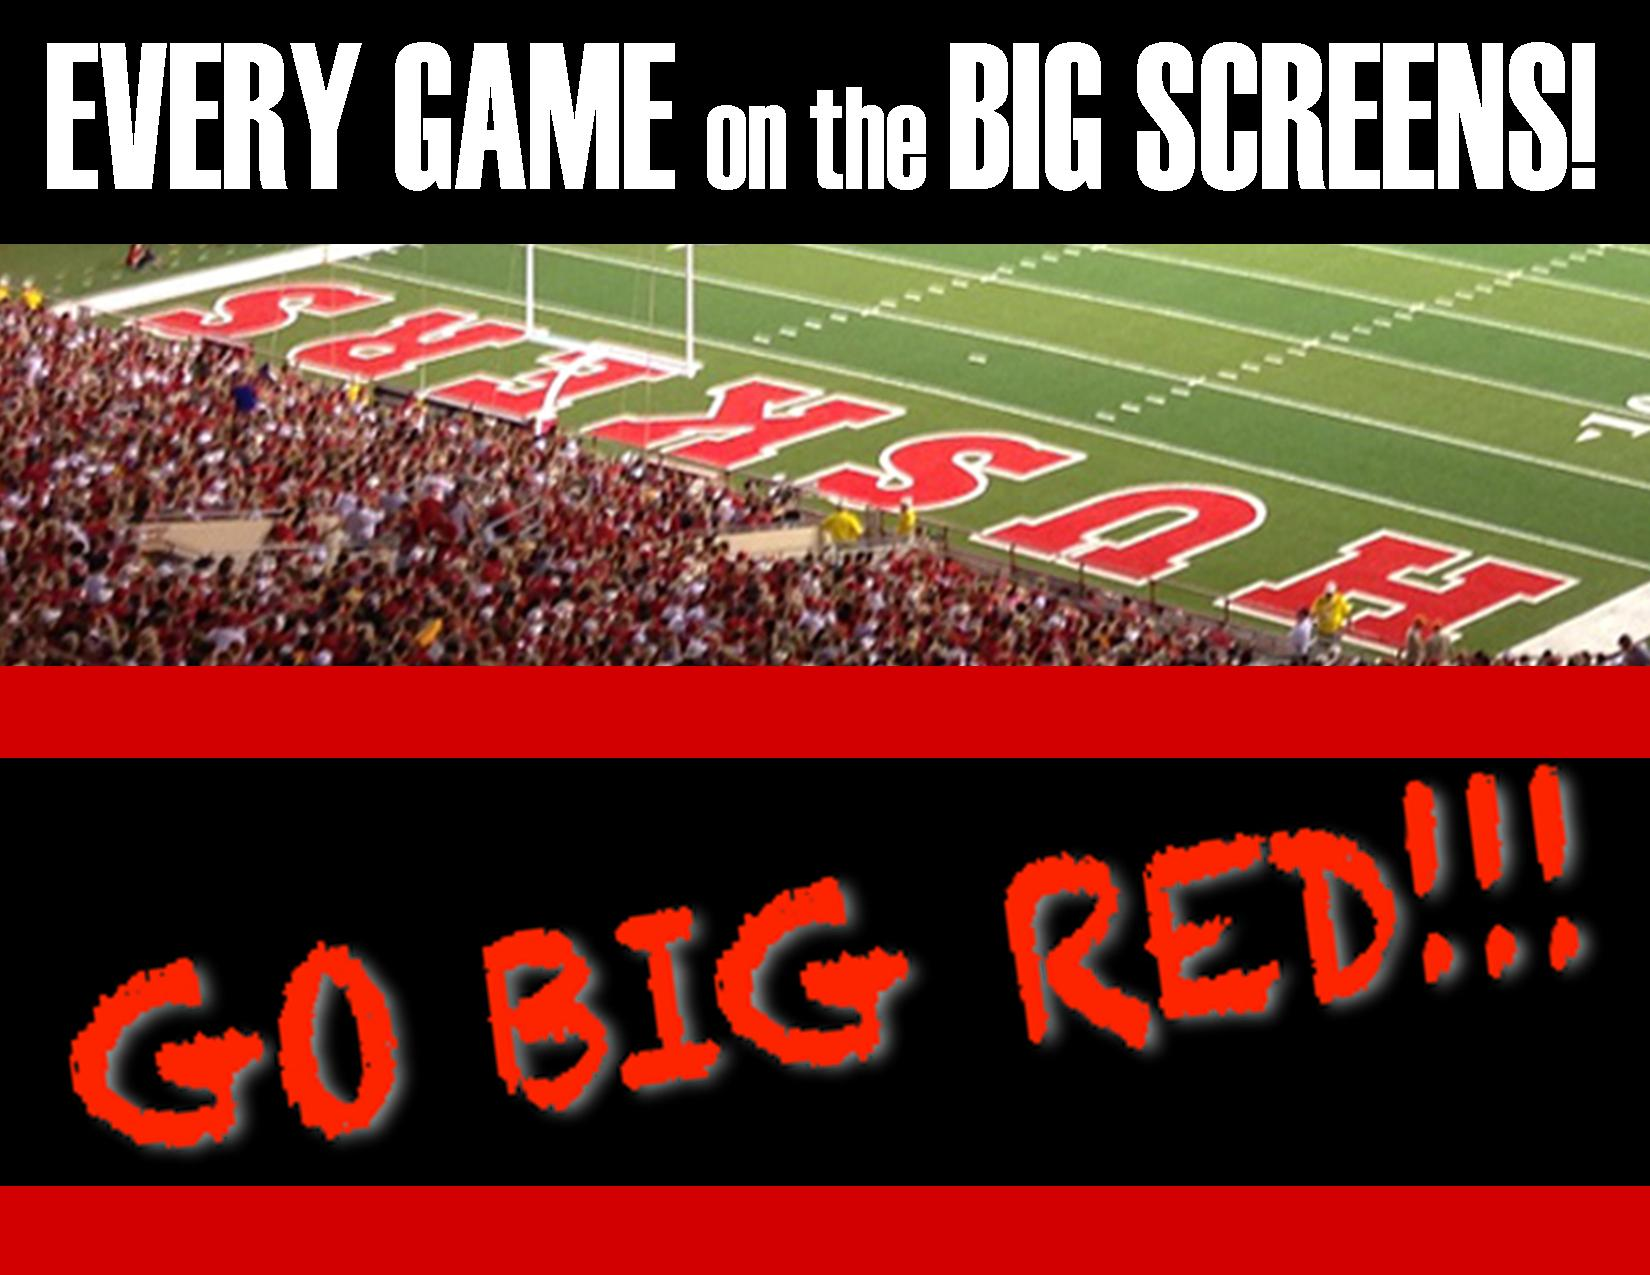 Husker Games on Big Screen.jpg